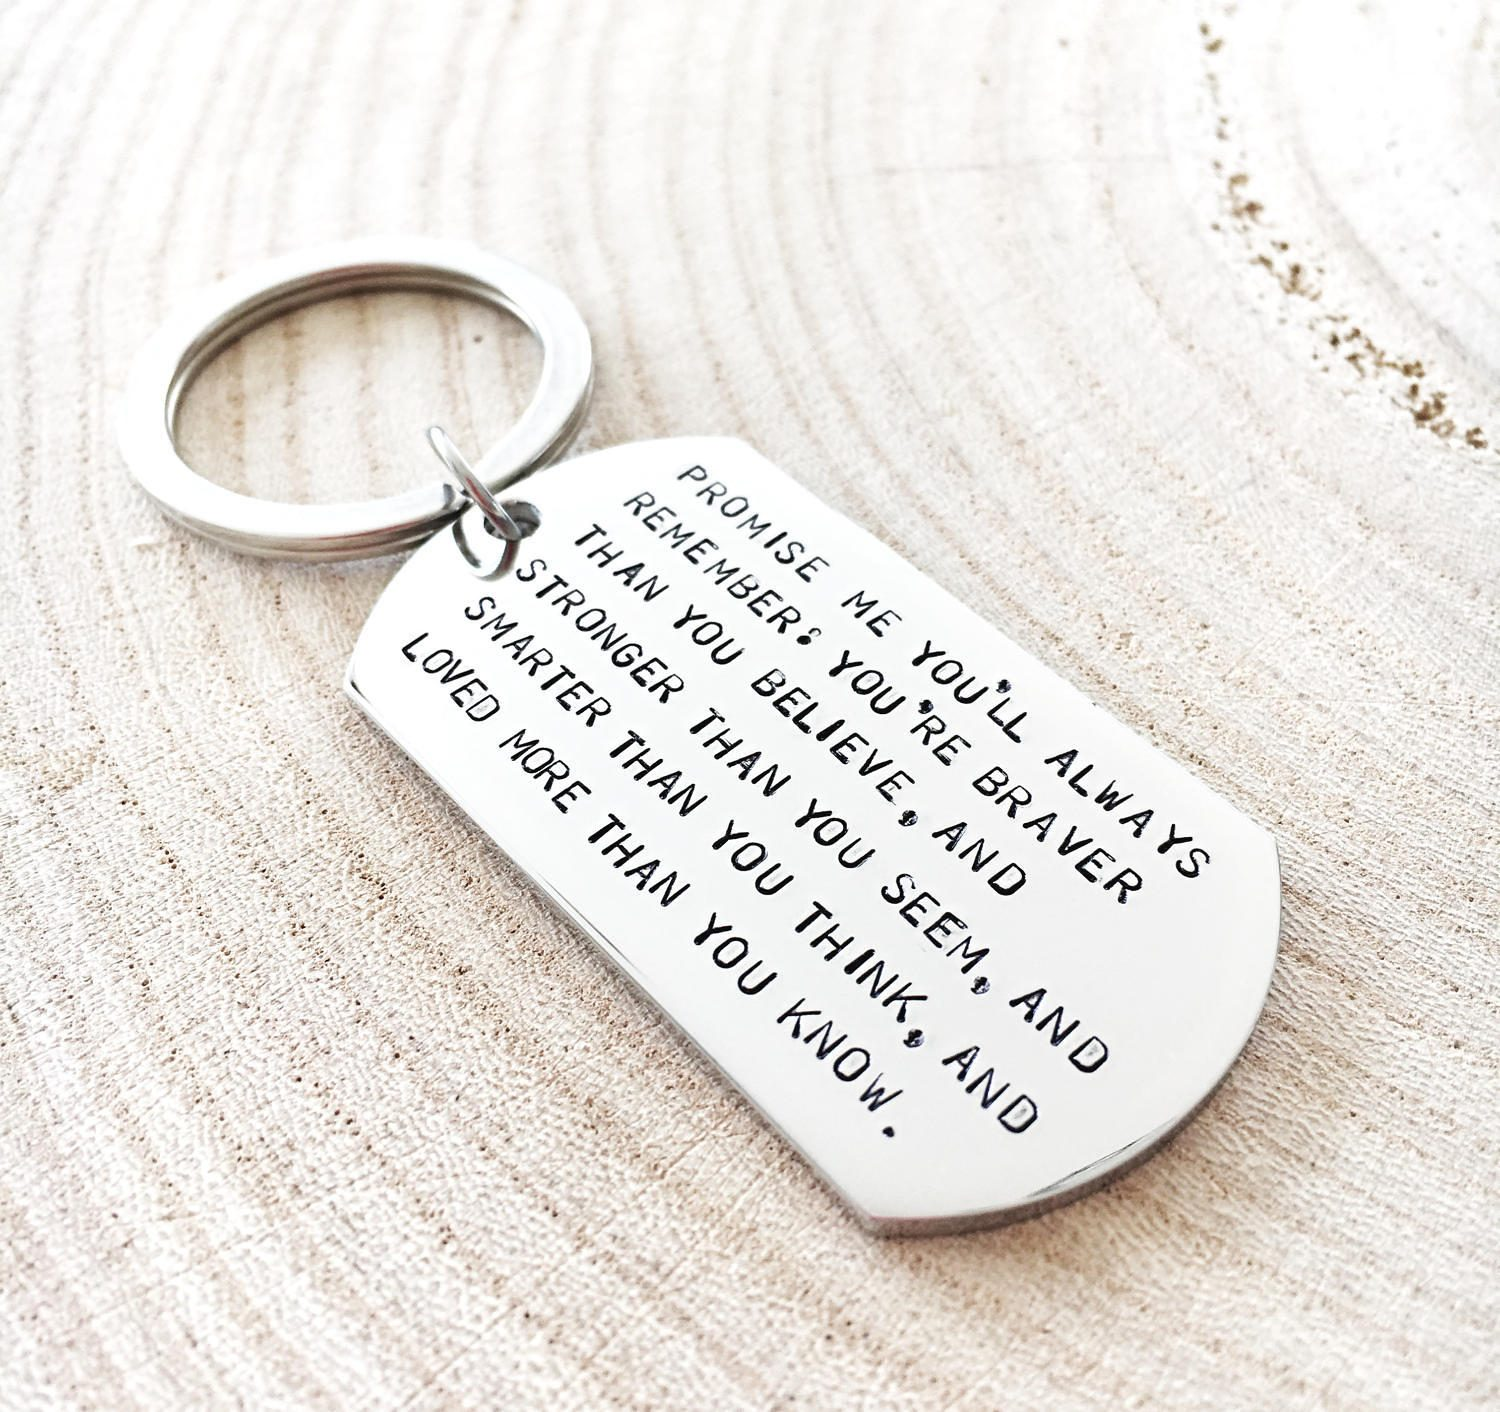 Birthday Gifts For Him In His 20s: Graduation Keychain Quote Keyring Inspiration Gift For Him